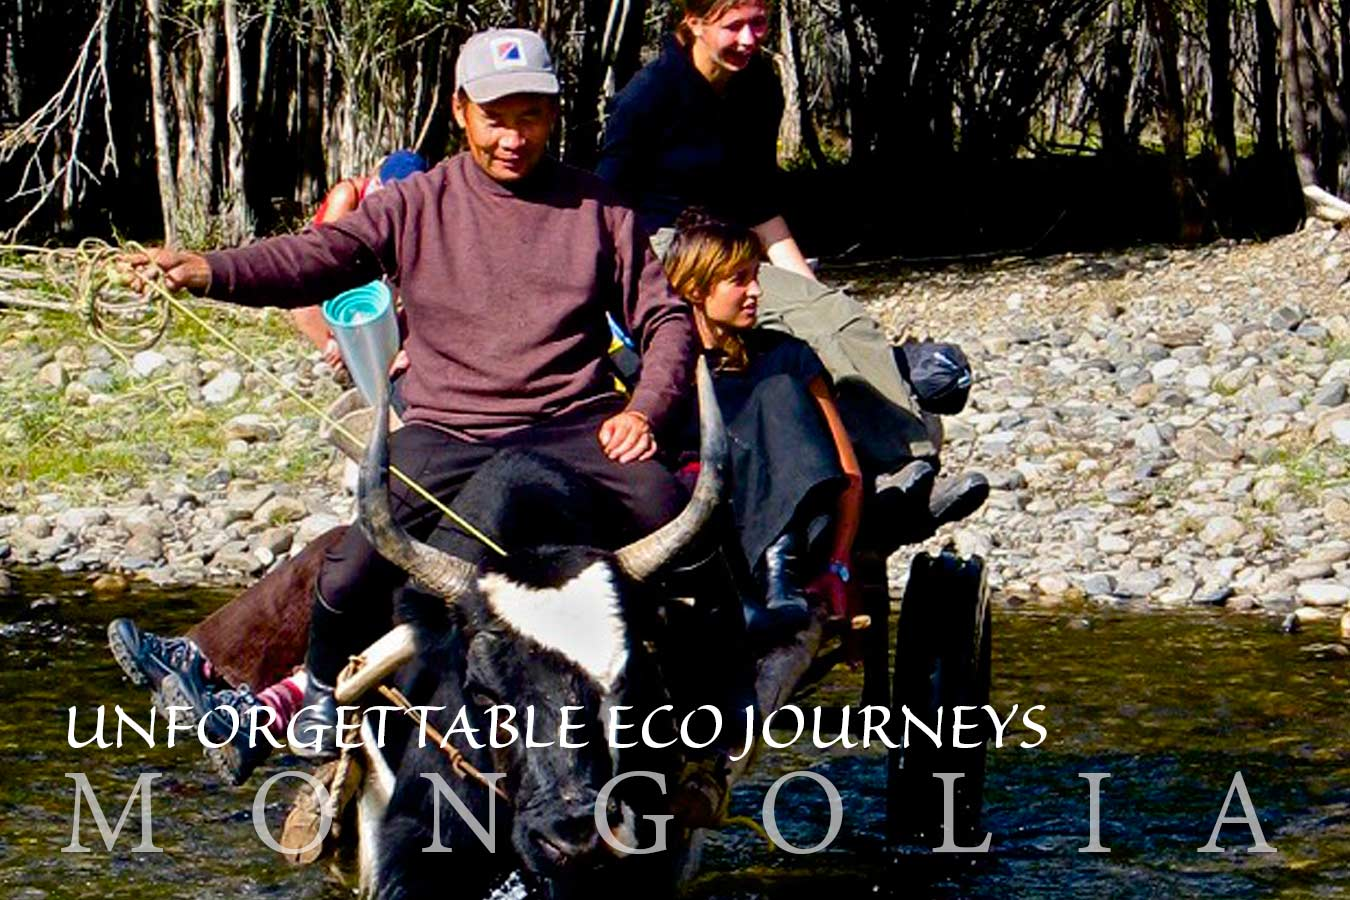 GER to GER Mongolia - Unforgettable Eco Journeys